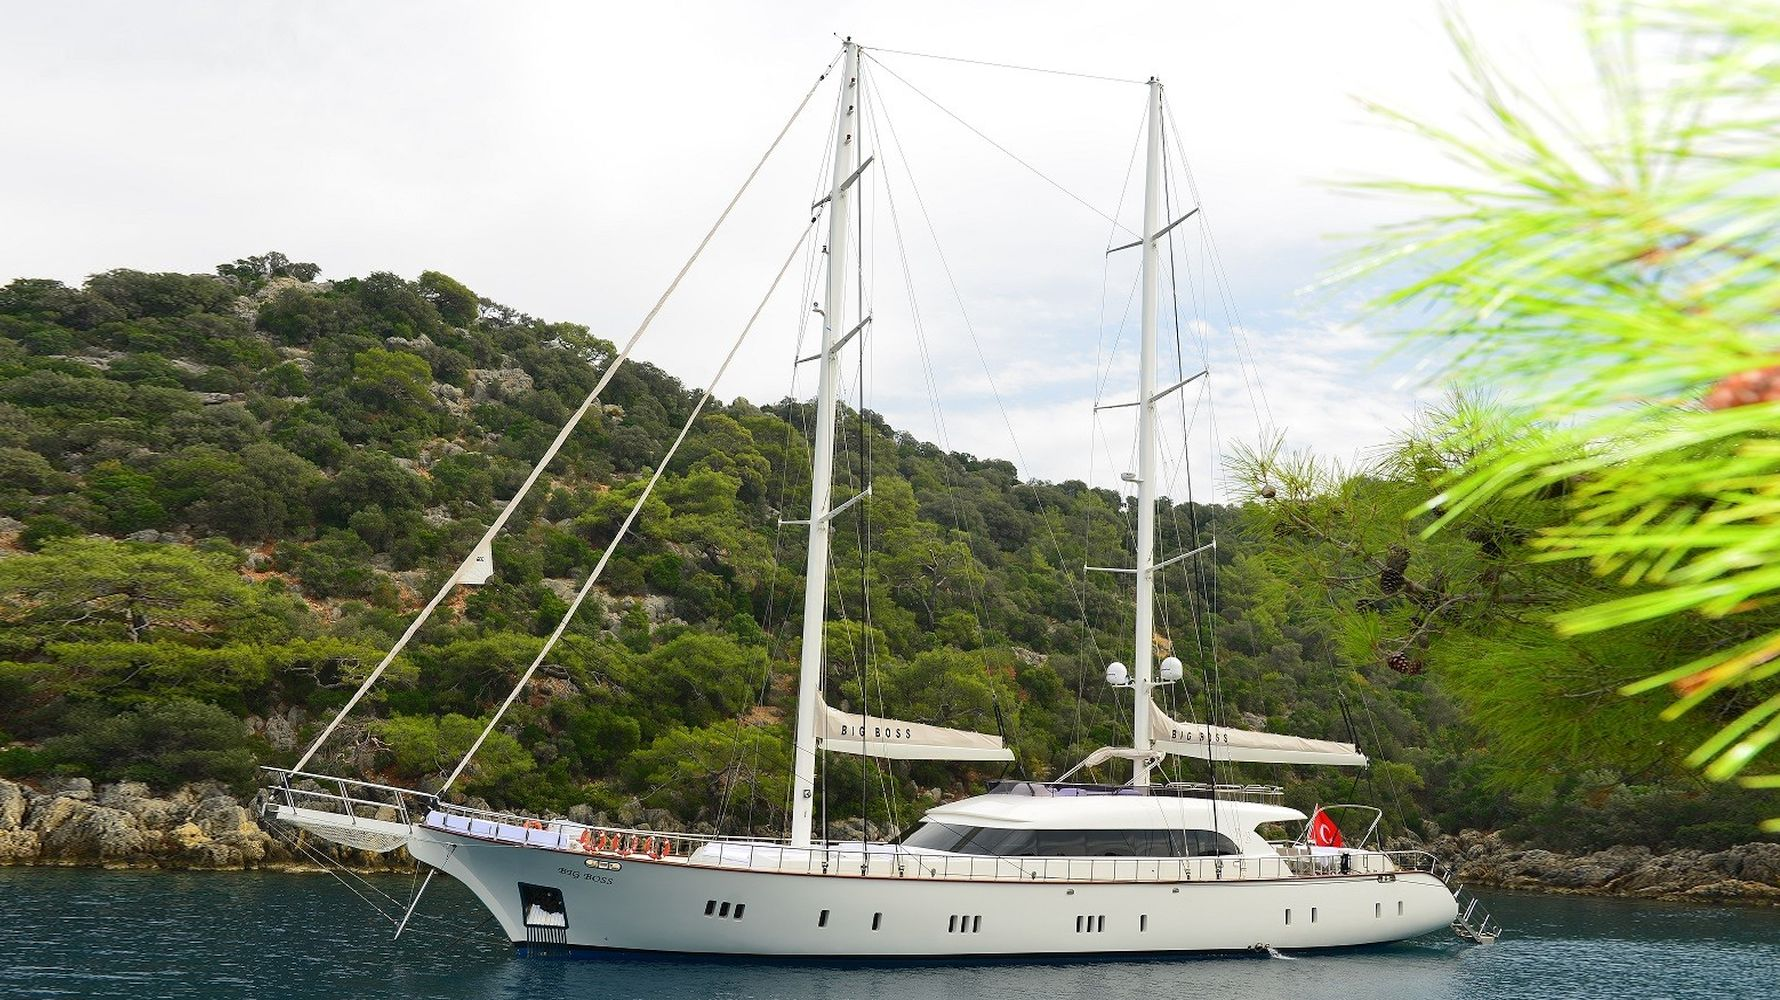 metro turkey started online ordering service for private yachts in fethiye